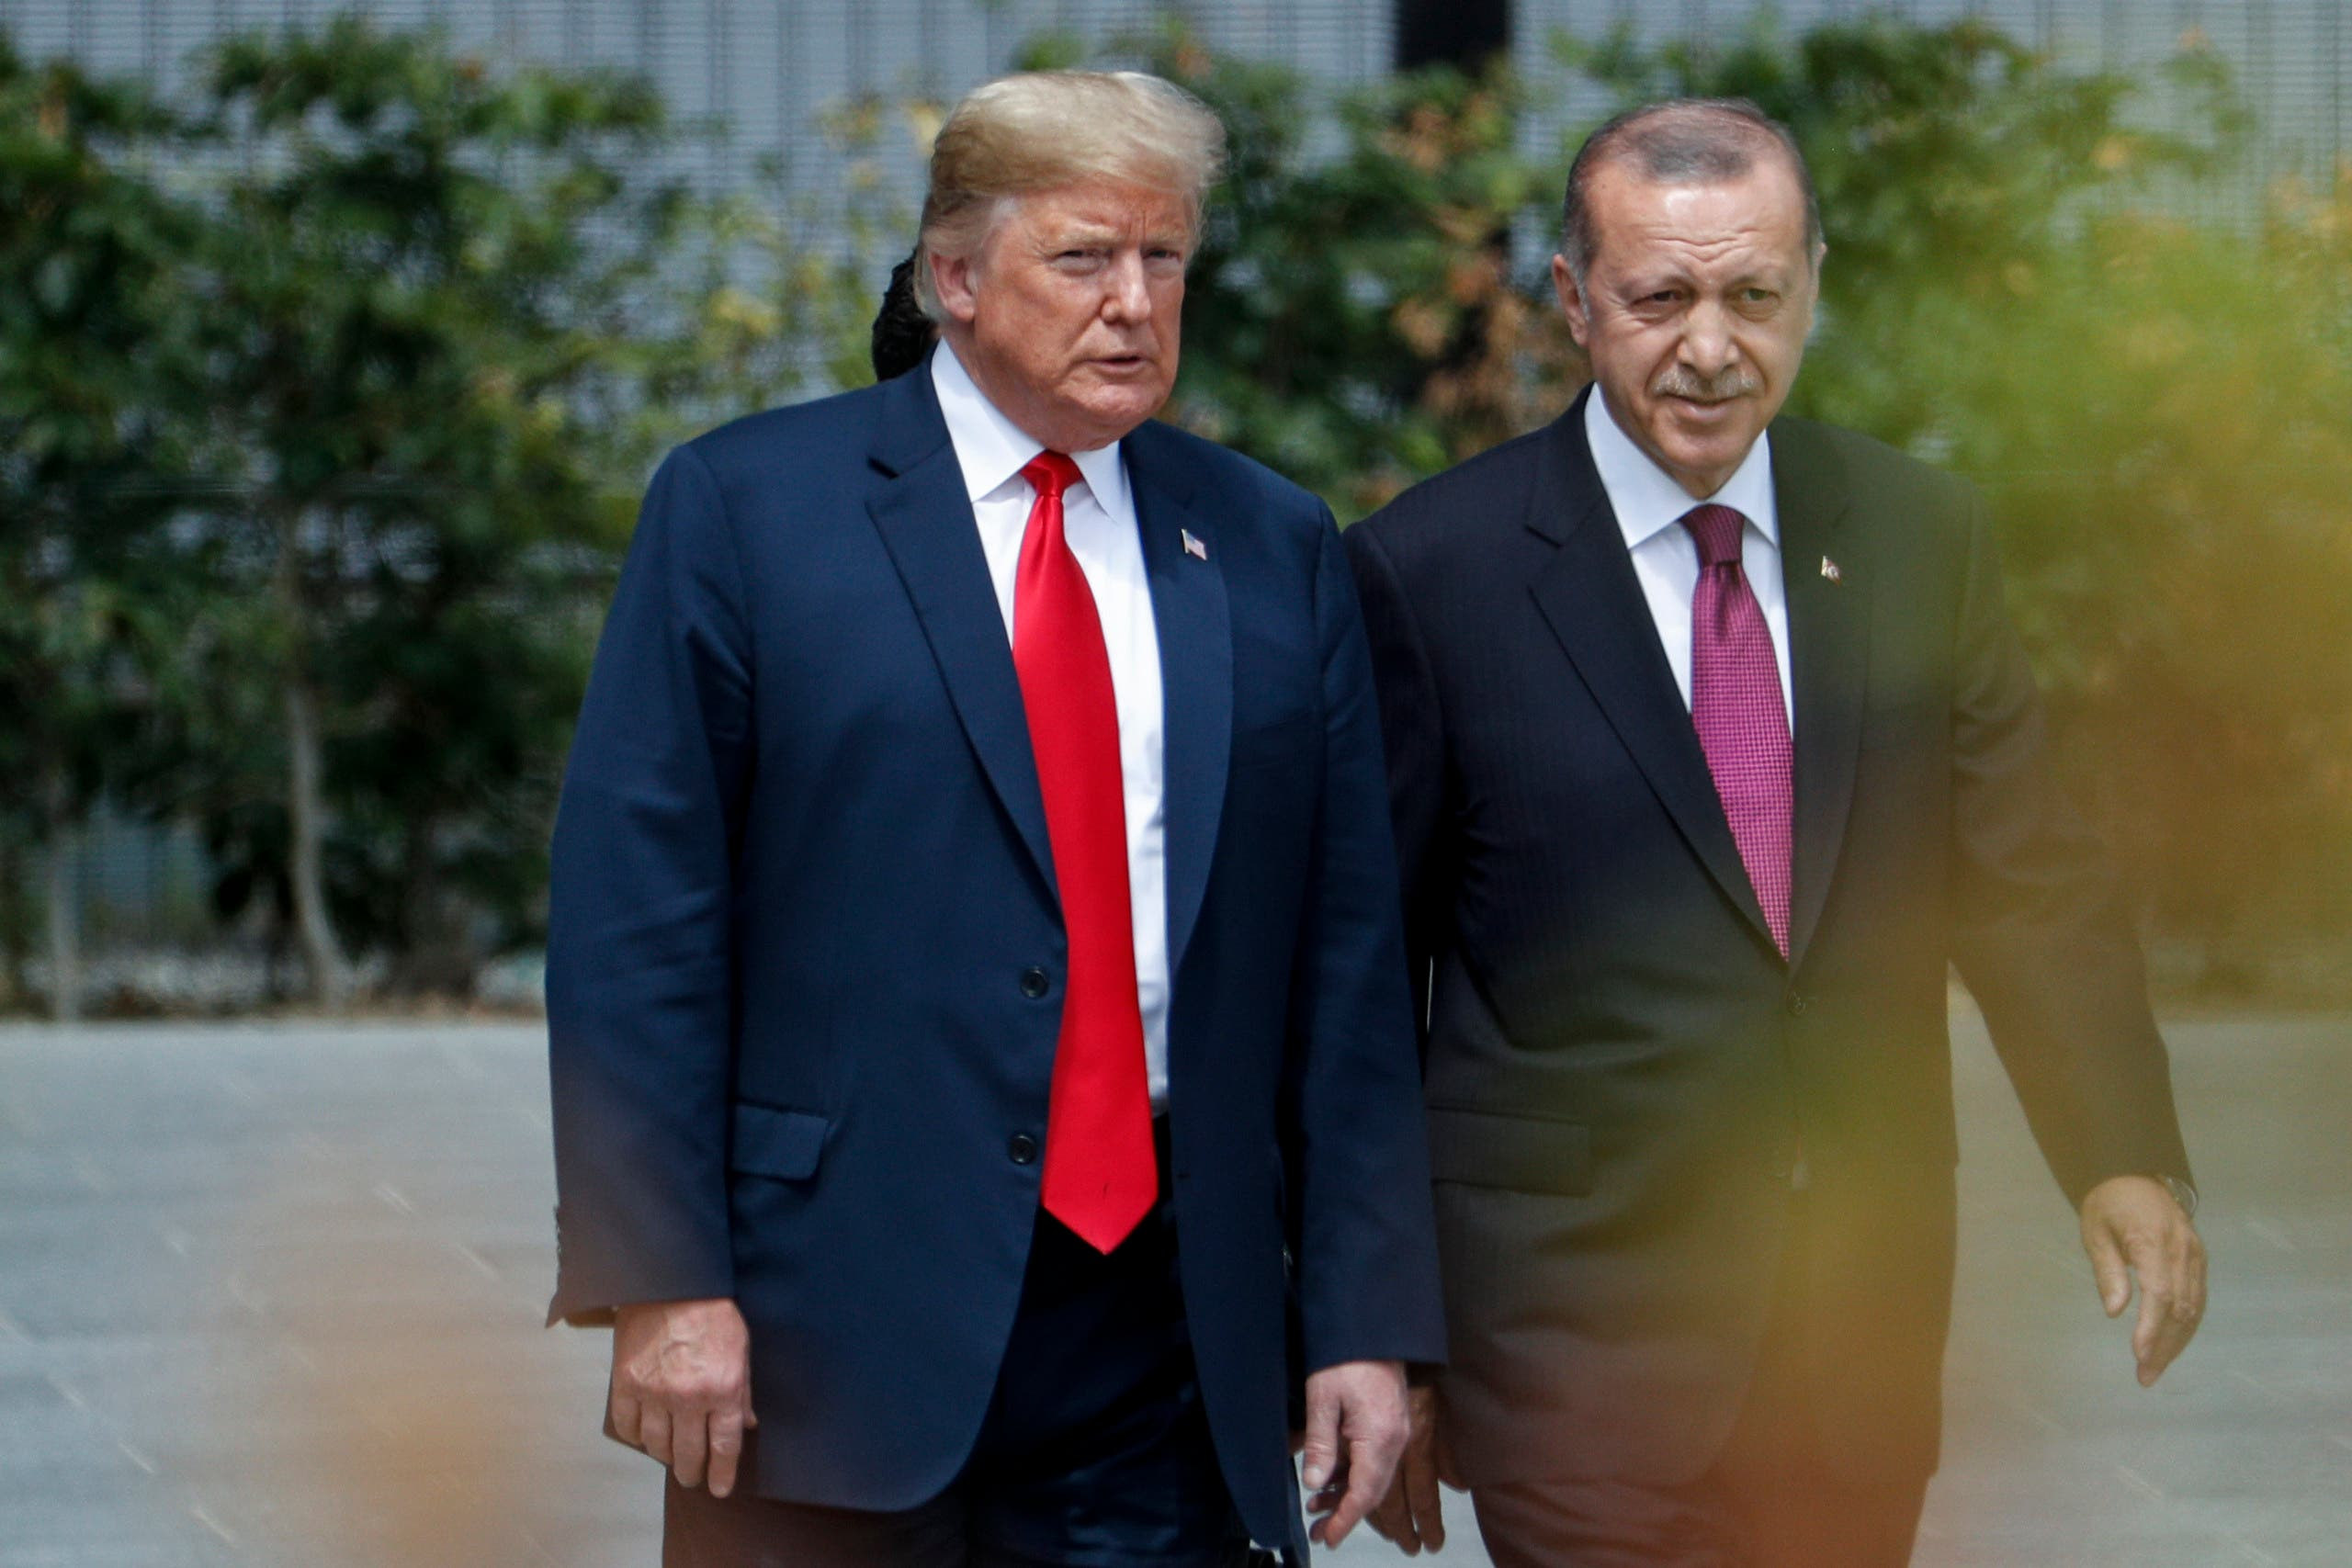 US President Donald Trump (L) speaks to Turkey's President Recep Tayyip Erdogan during the opening ceremony of the NATO (North Atlantic Treaty Organization) summit, at the NATO headquarters in Brussels, on July 11, 2018. (AFP)